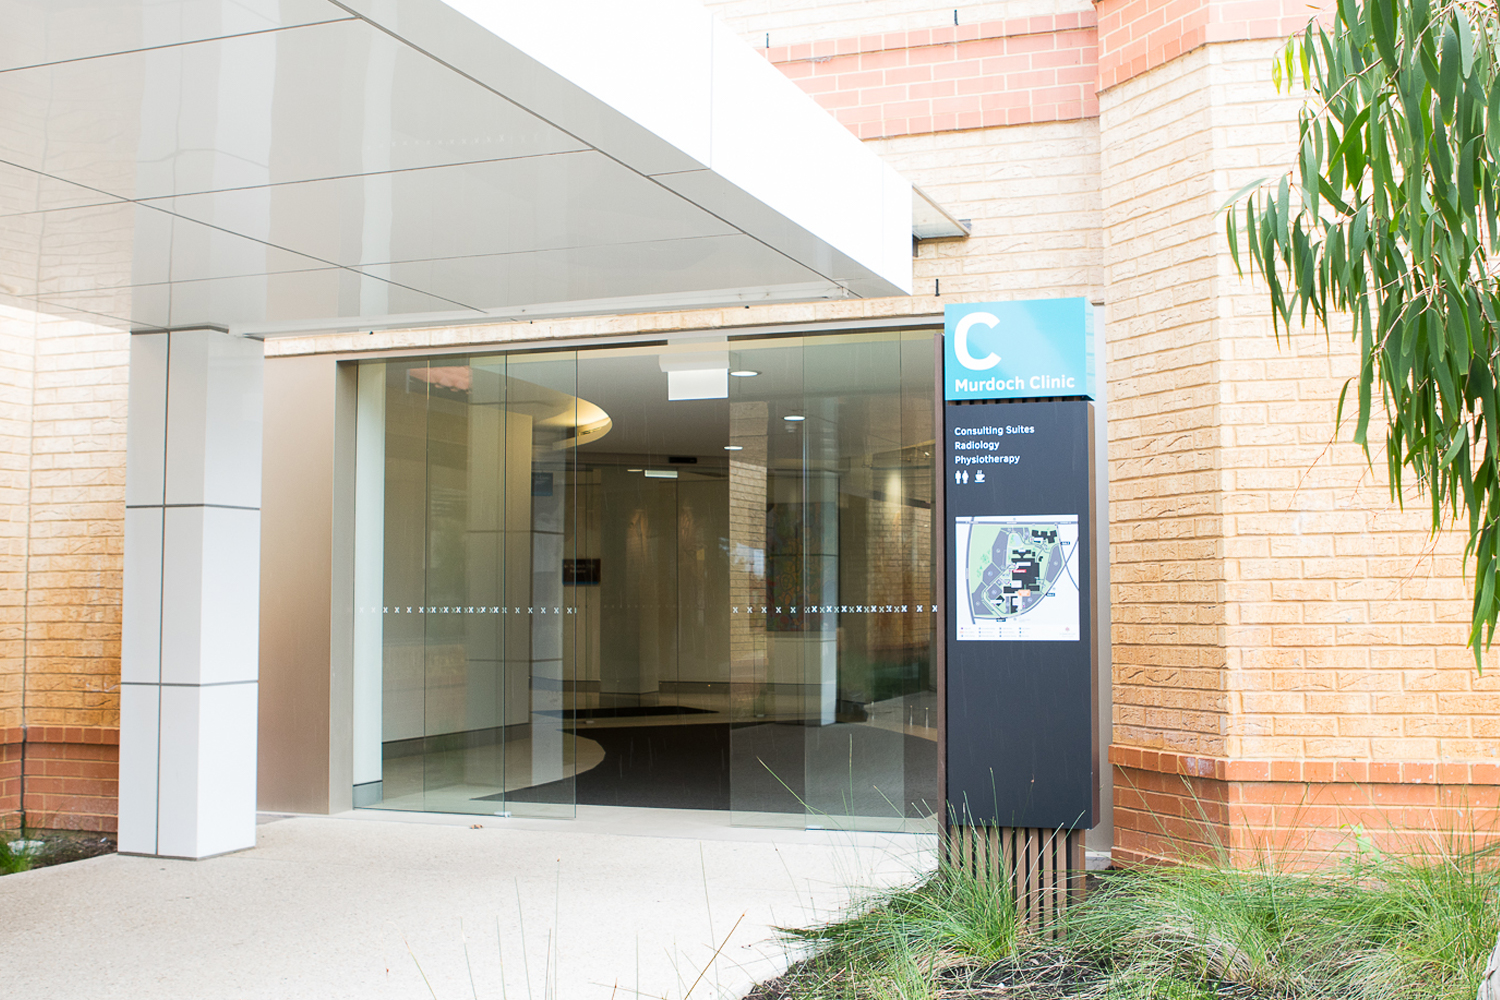 If you park in the P4 area or arrive by public transport you may approach Building C - Murdoch Medical Clinic via the secondary entrance (The Wexford Medical Centre is located behind you).